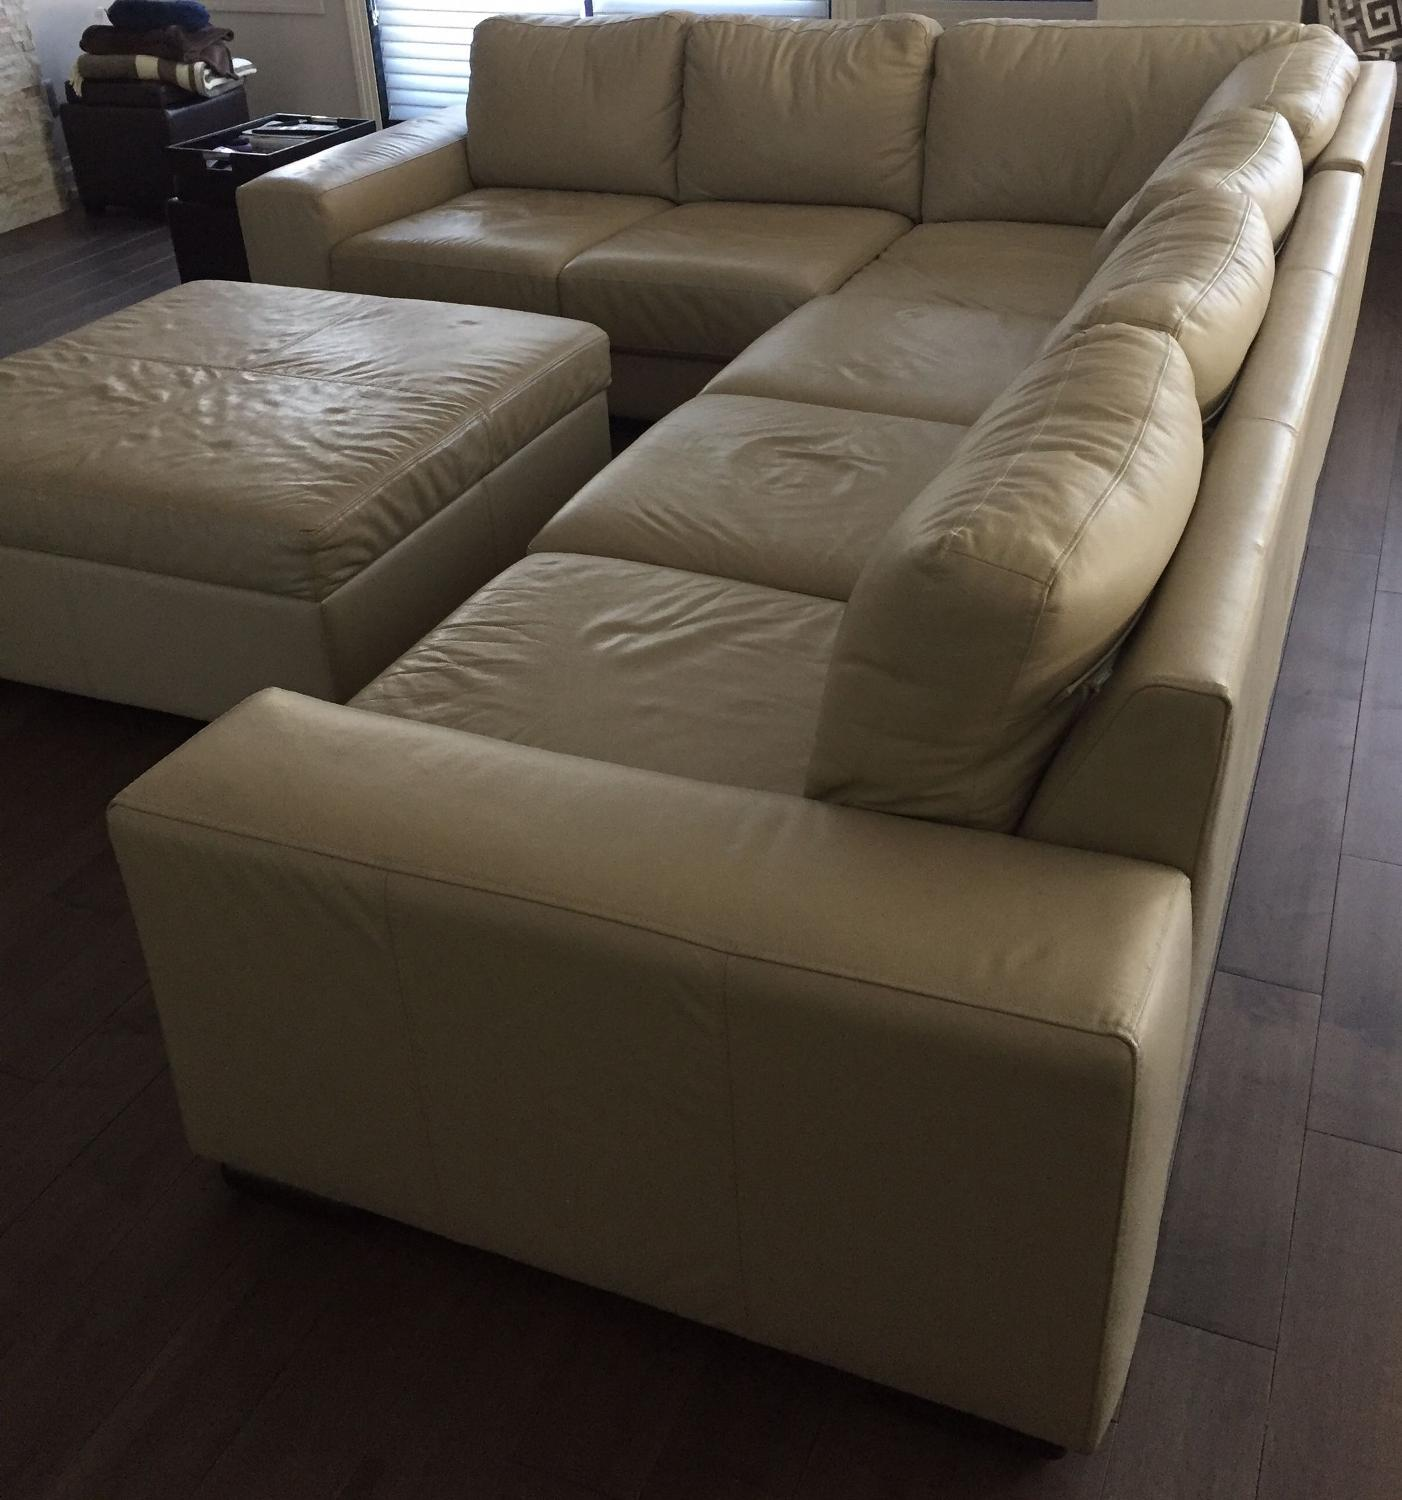 Genuine Leather Sectional Sofa Canada: Find More Leather L-sofa & Ottoman For Sale At Up To 90